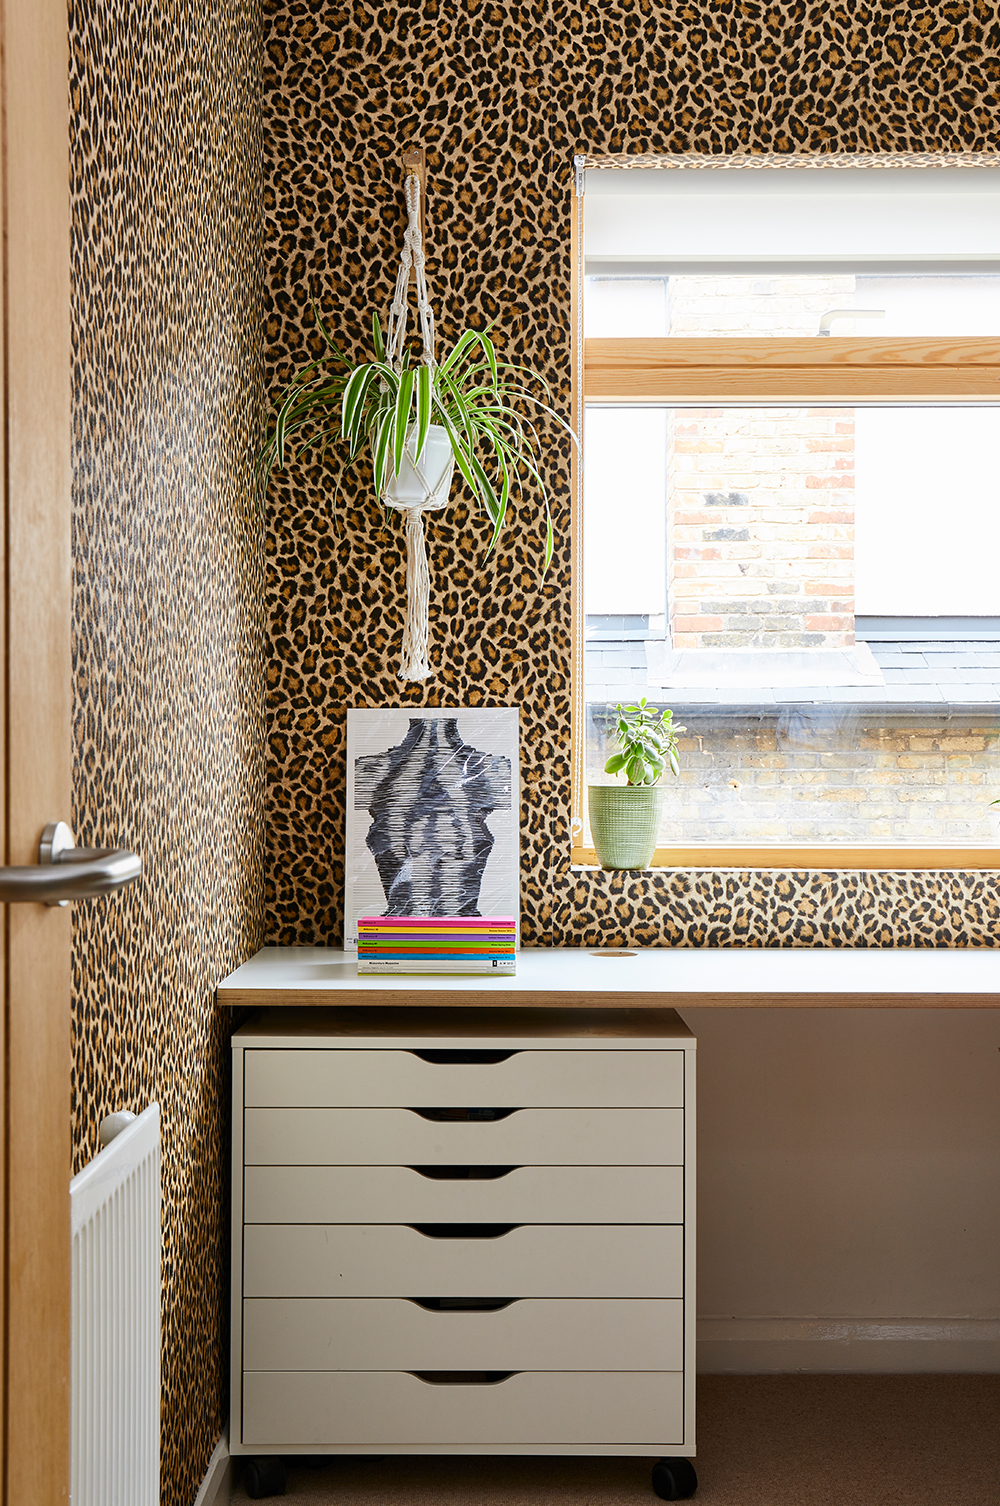 Bo's leopard print study papered in Albany's Big Cat